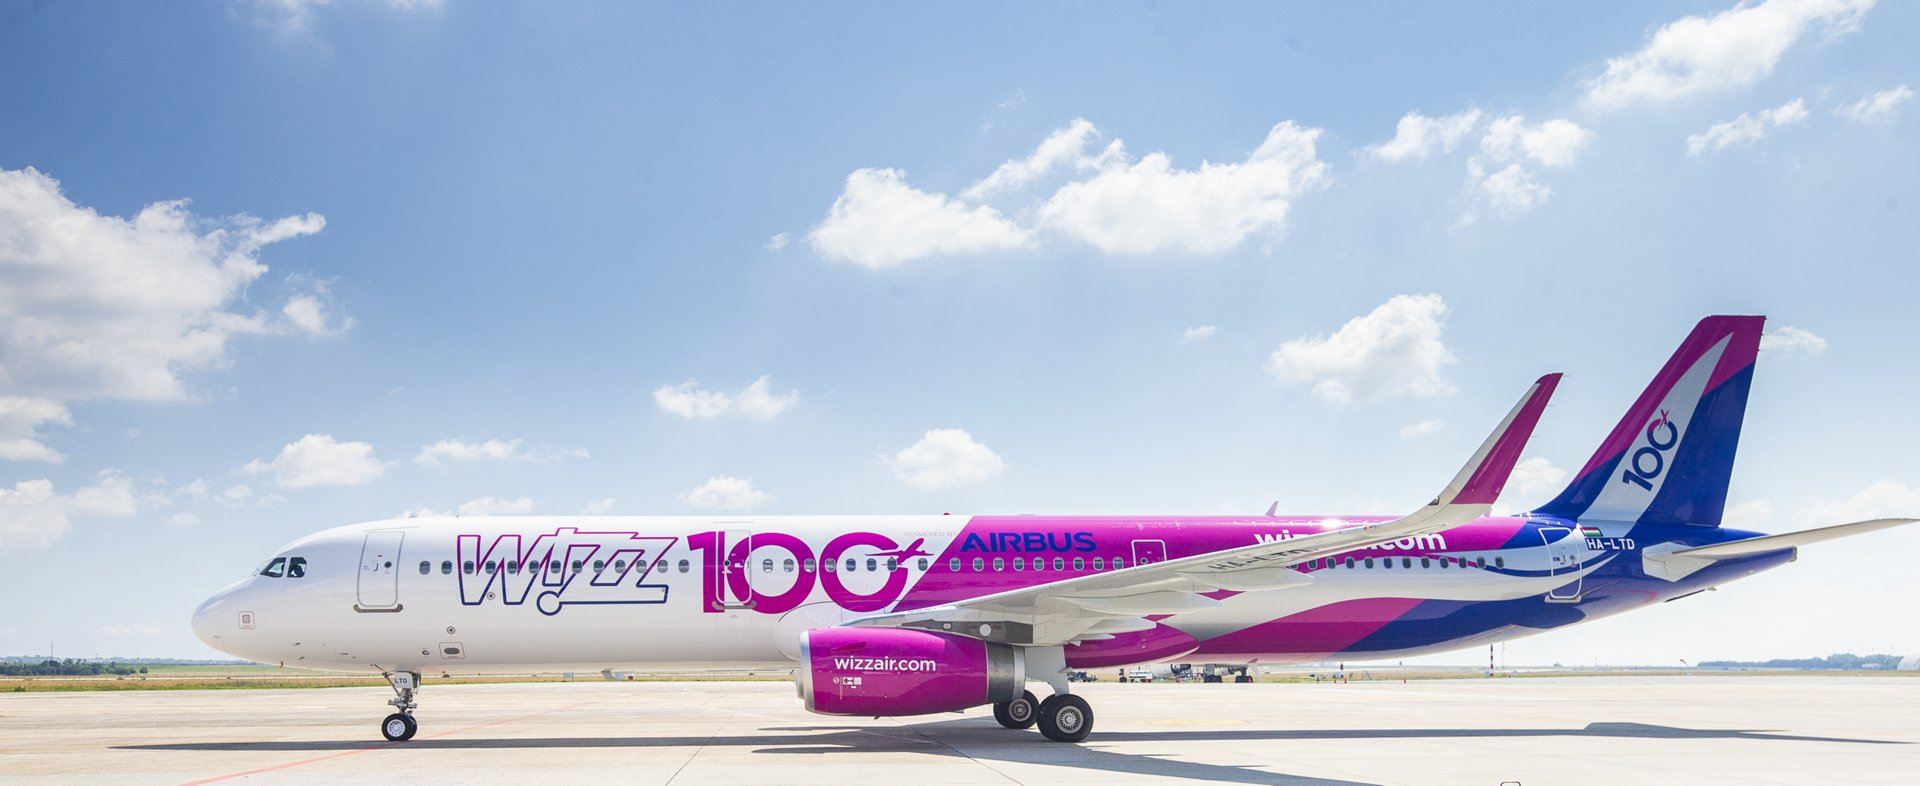 Wizz Air takes delivery of its 100th A320 Family aircraft